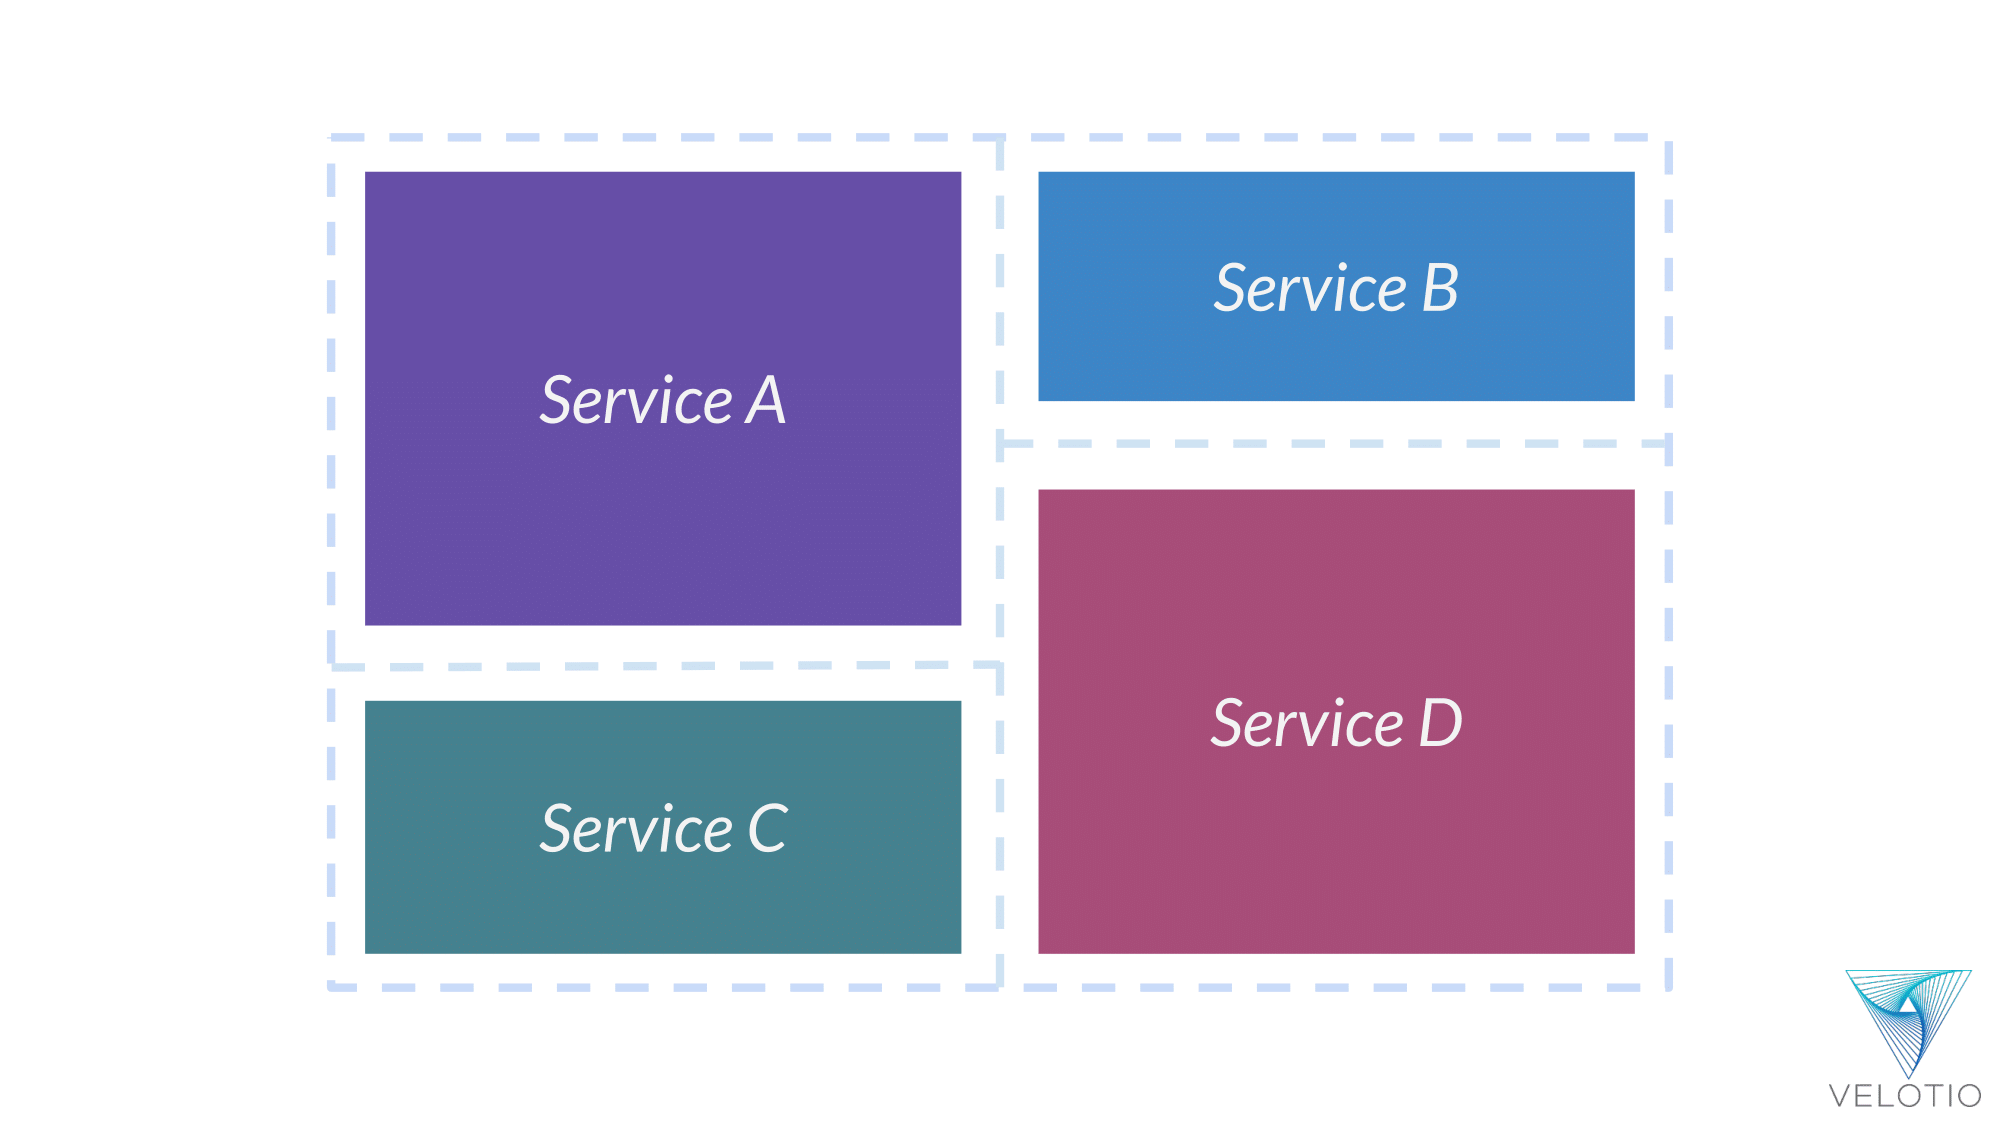 Distributed Application (representational) - with different services A, B, C and D